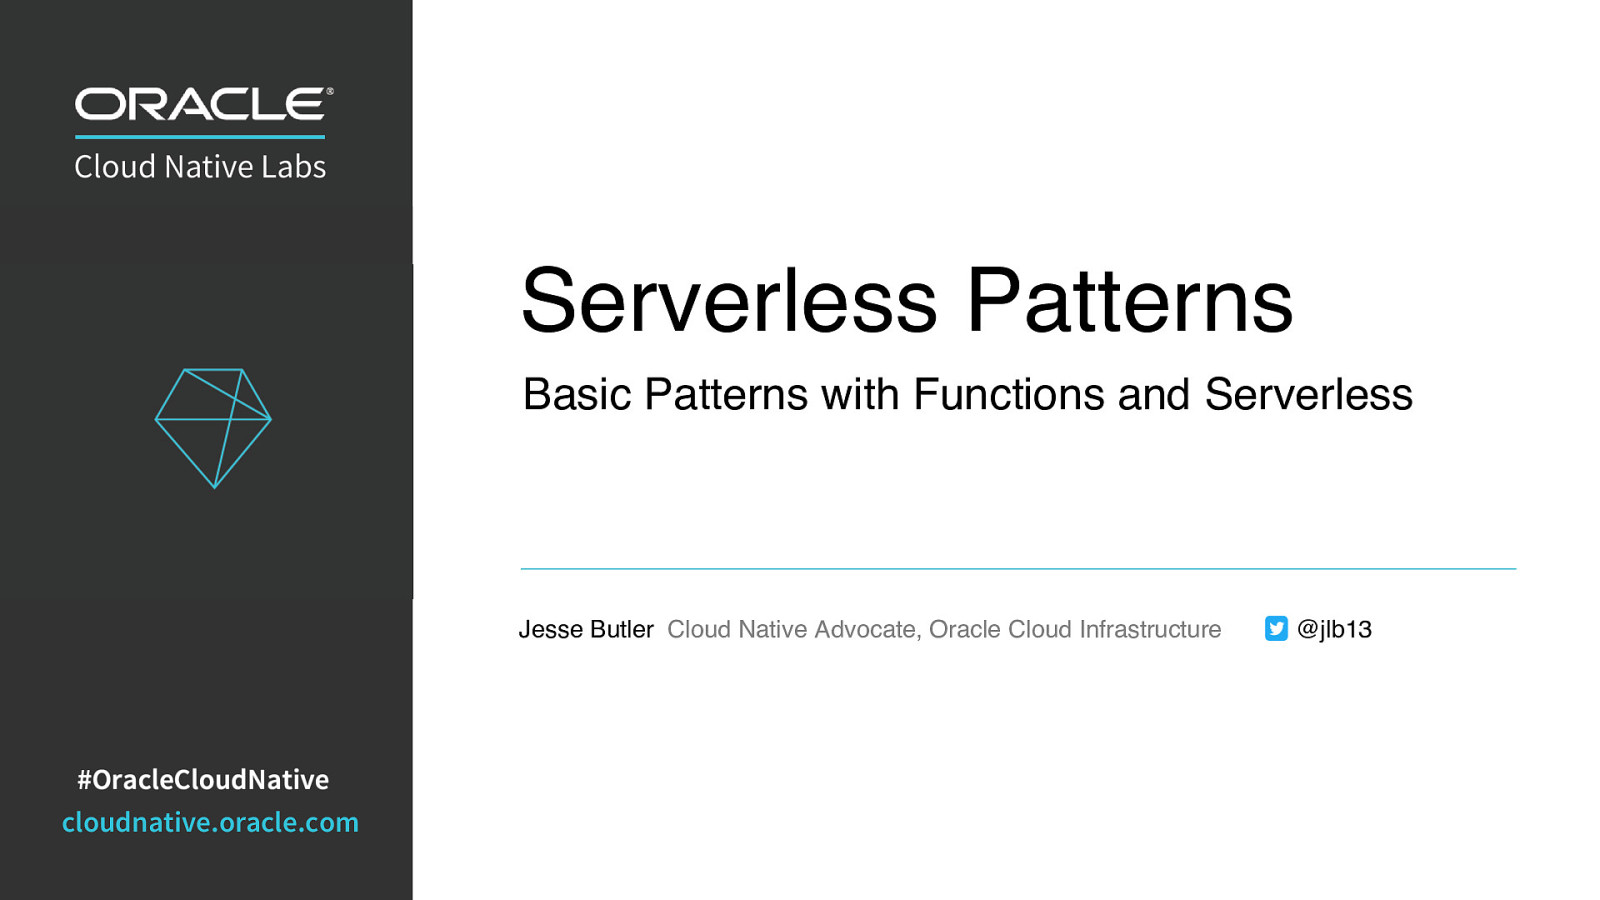 Serverless Patterns